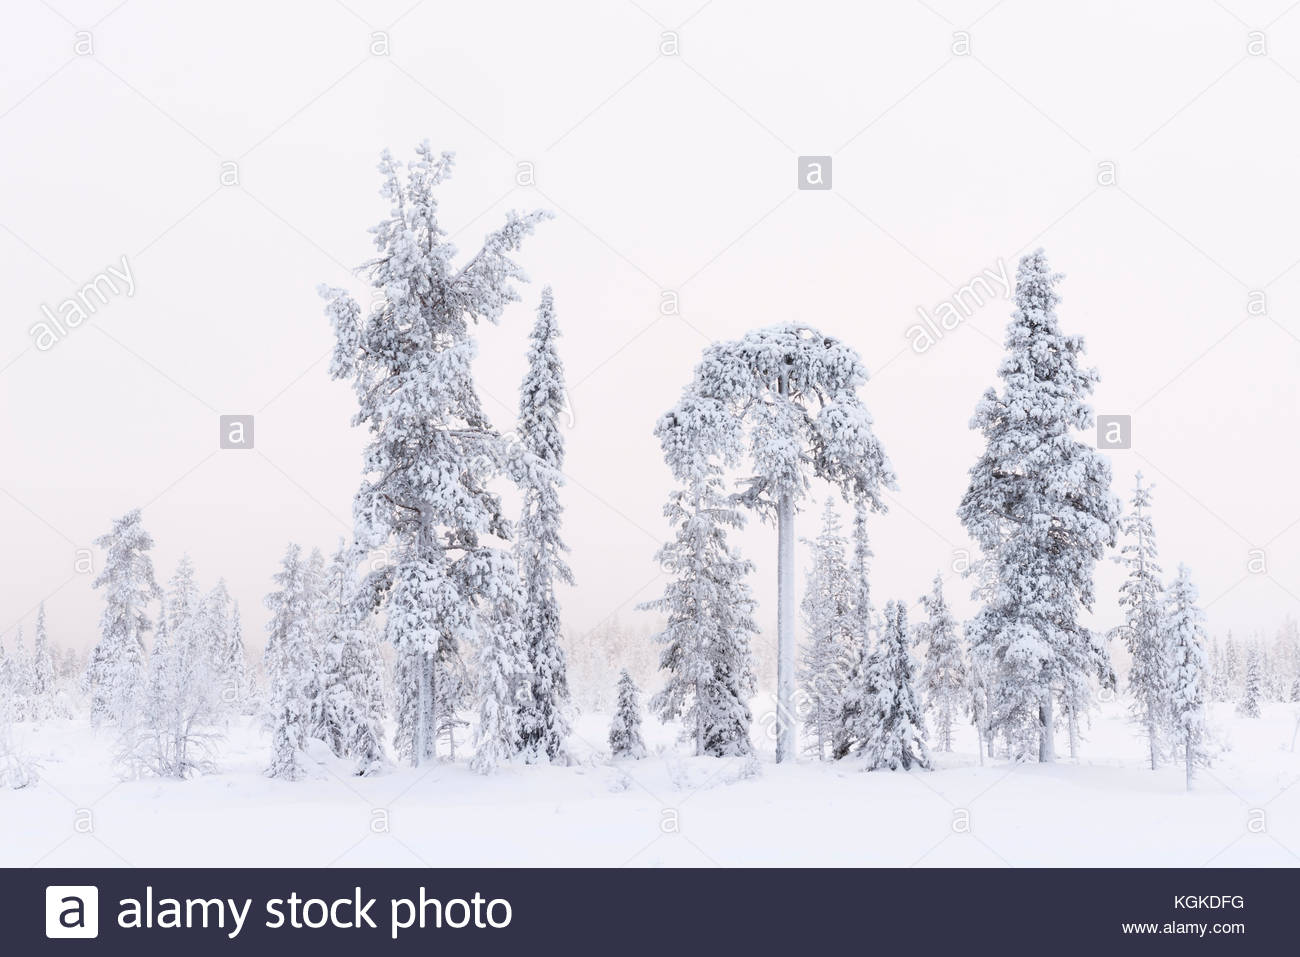 Frozen Norway spruce, Picea abies, and Scots pine, Pinus sylvestris, trees in winter. - Stock Image